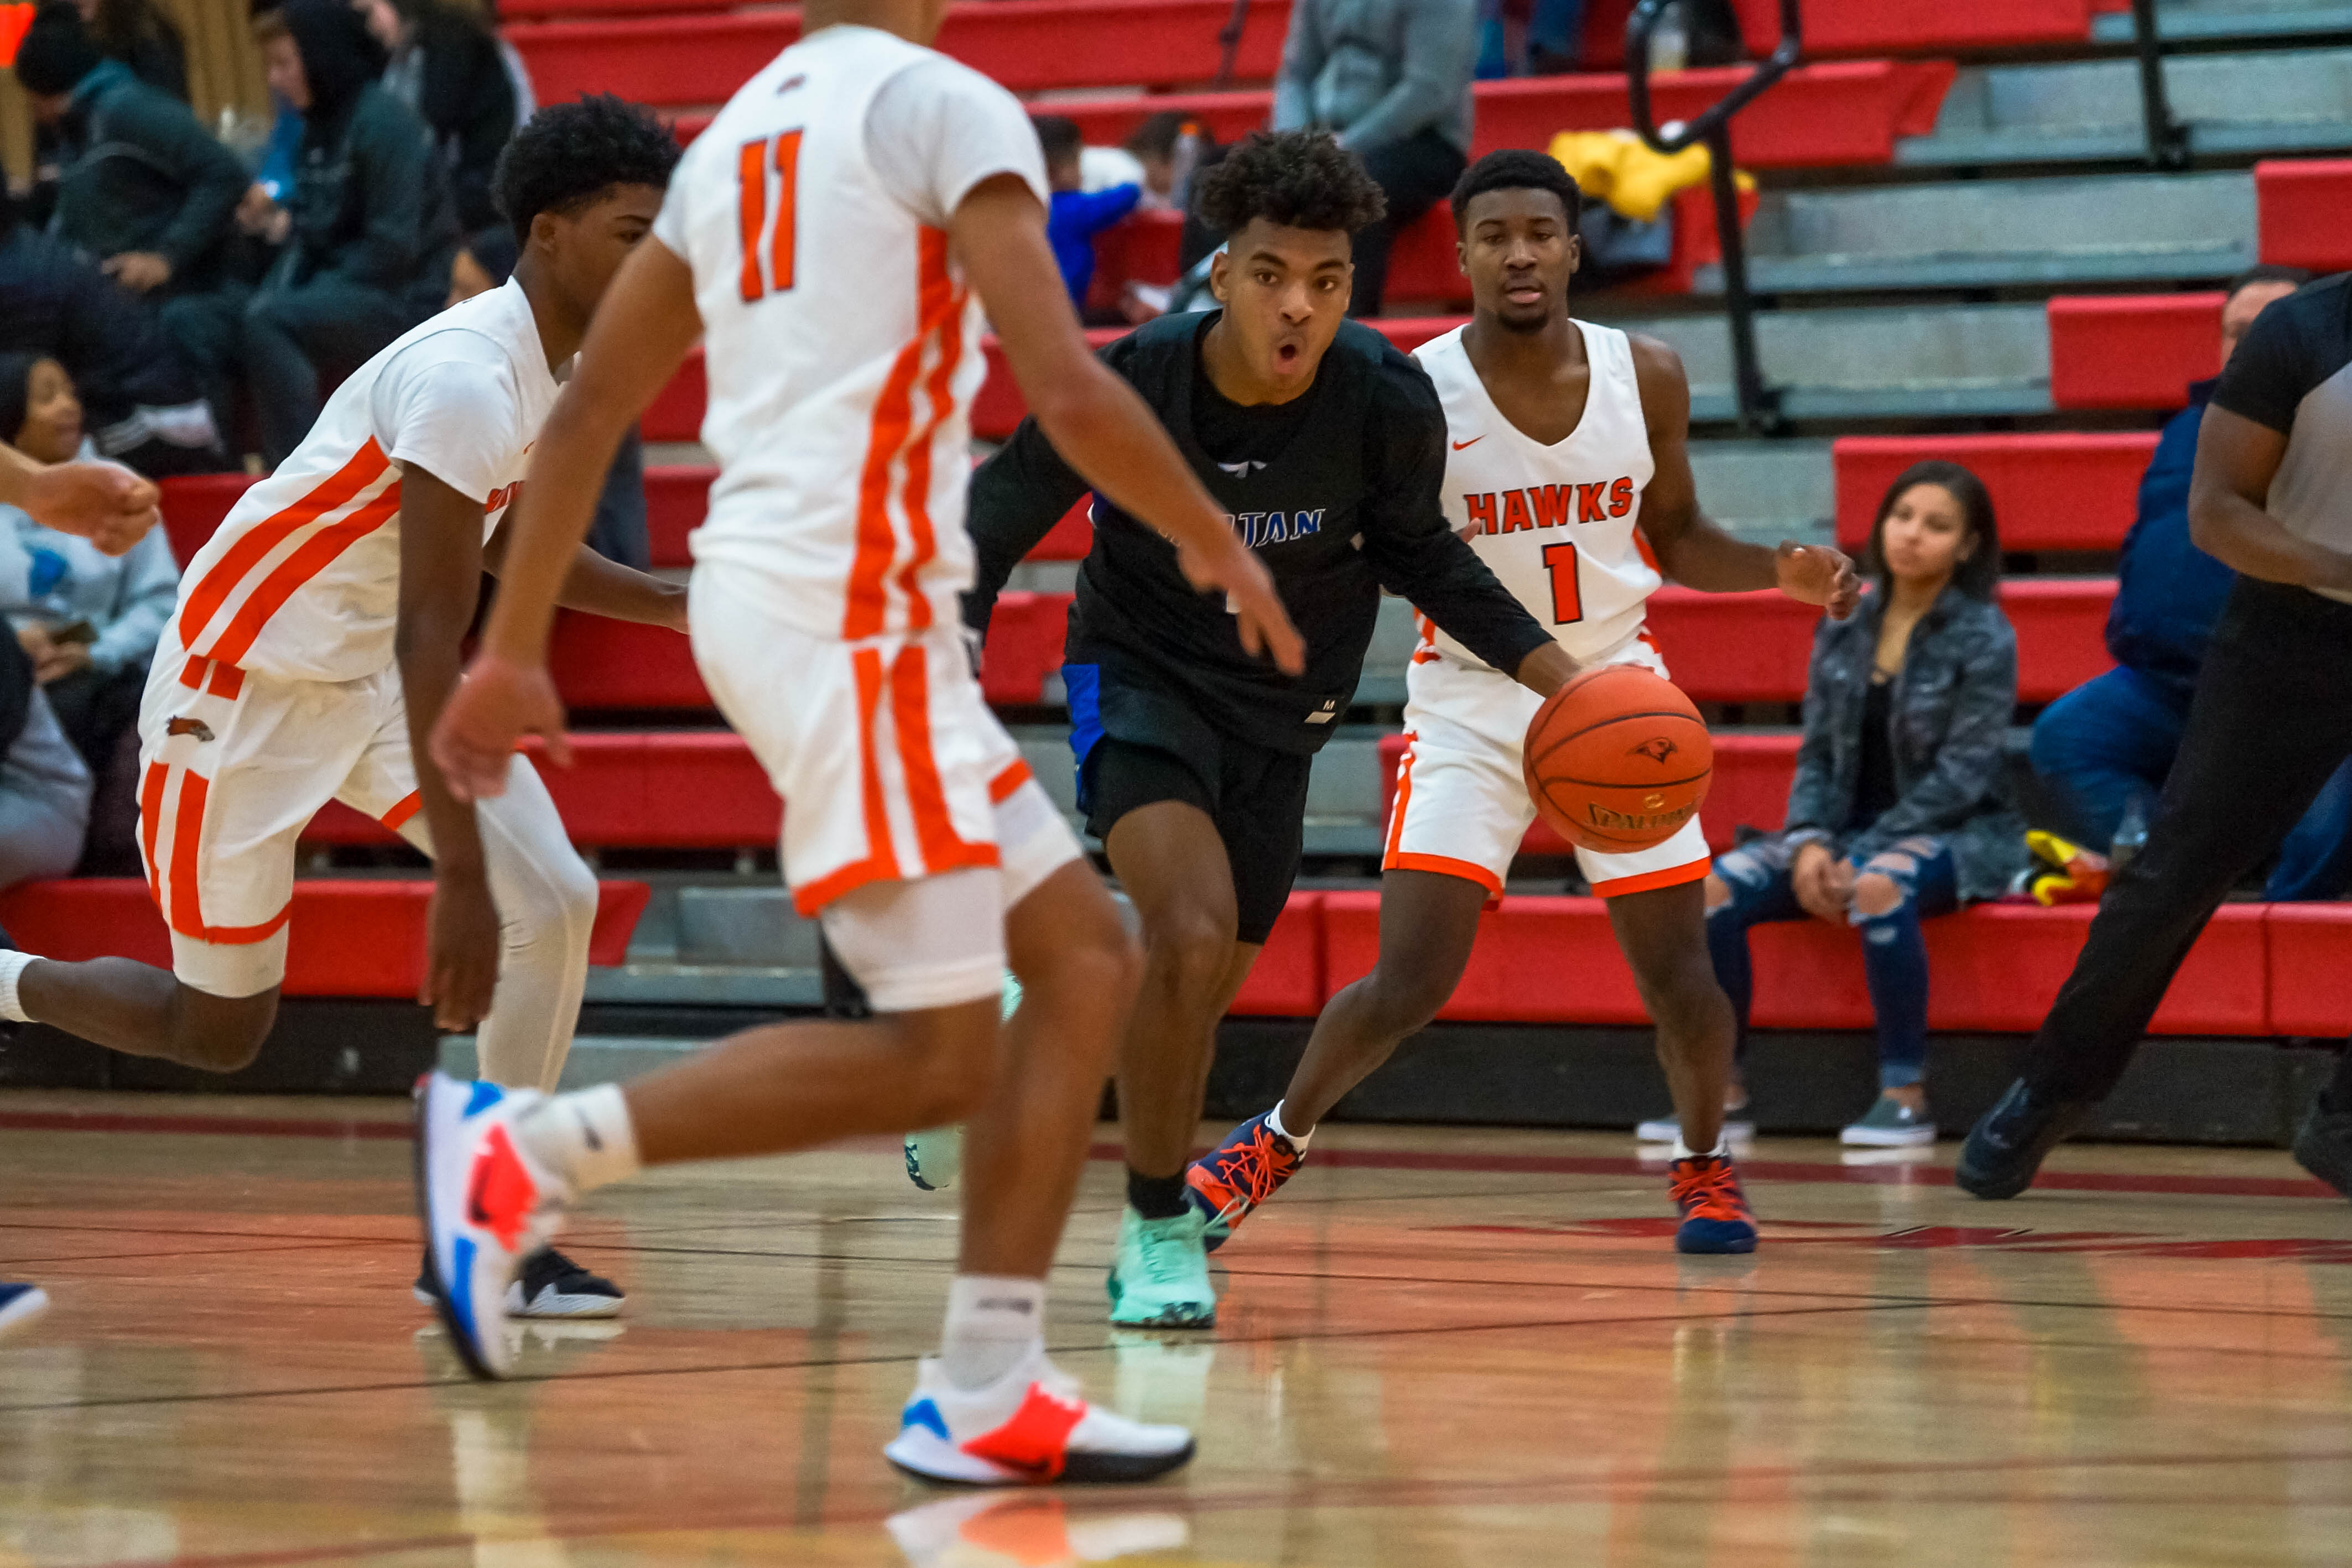 Tartan guard Dorian Singer (center) moves the ball up court against Robbinsdale Cooper Saturday in a 74-71 win for Tartan. Photo by Korey McDermott, SportsEngine